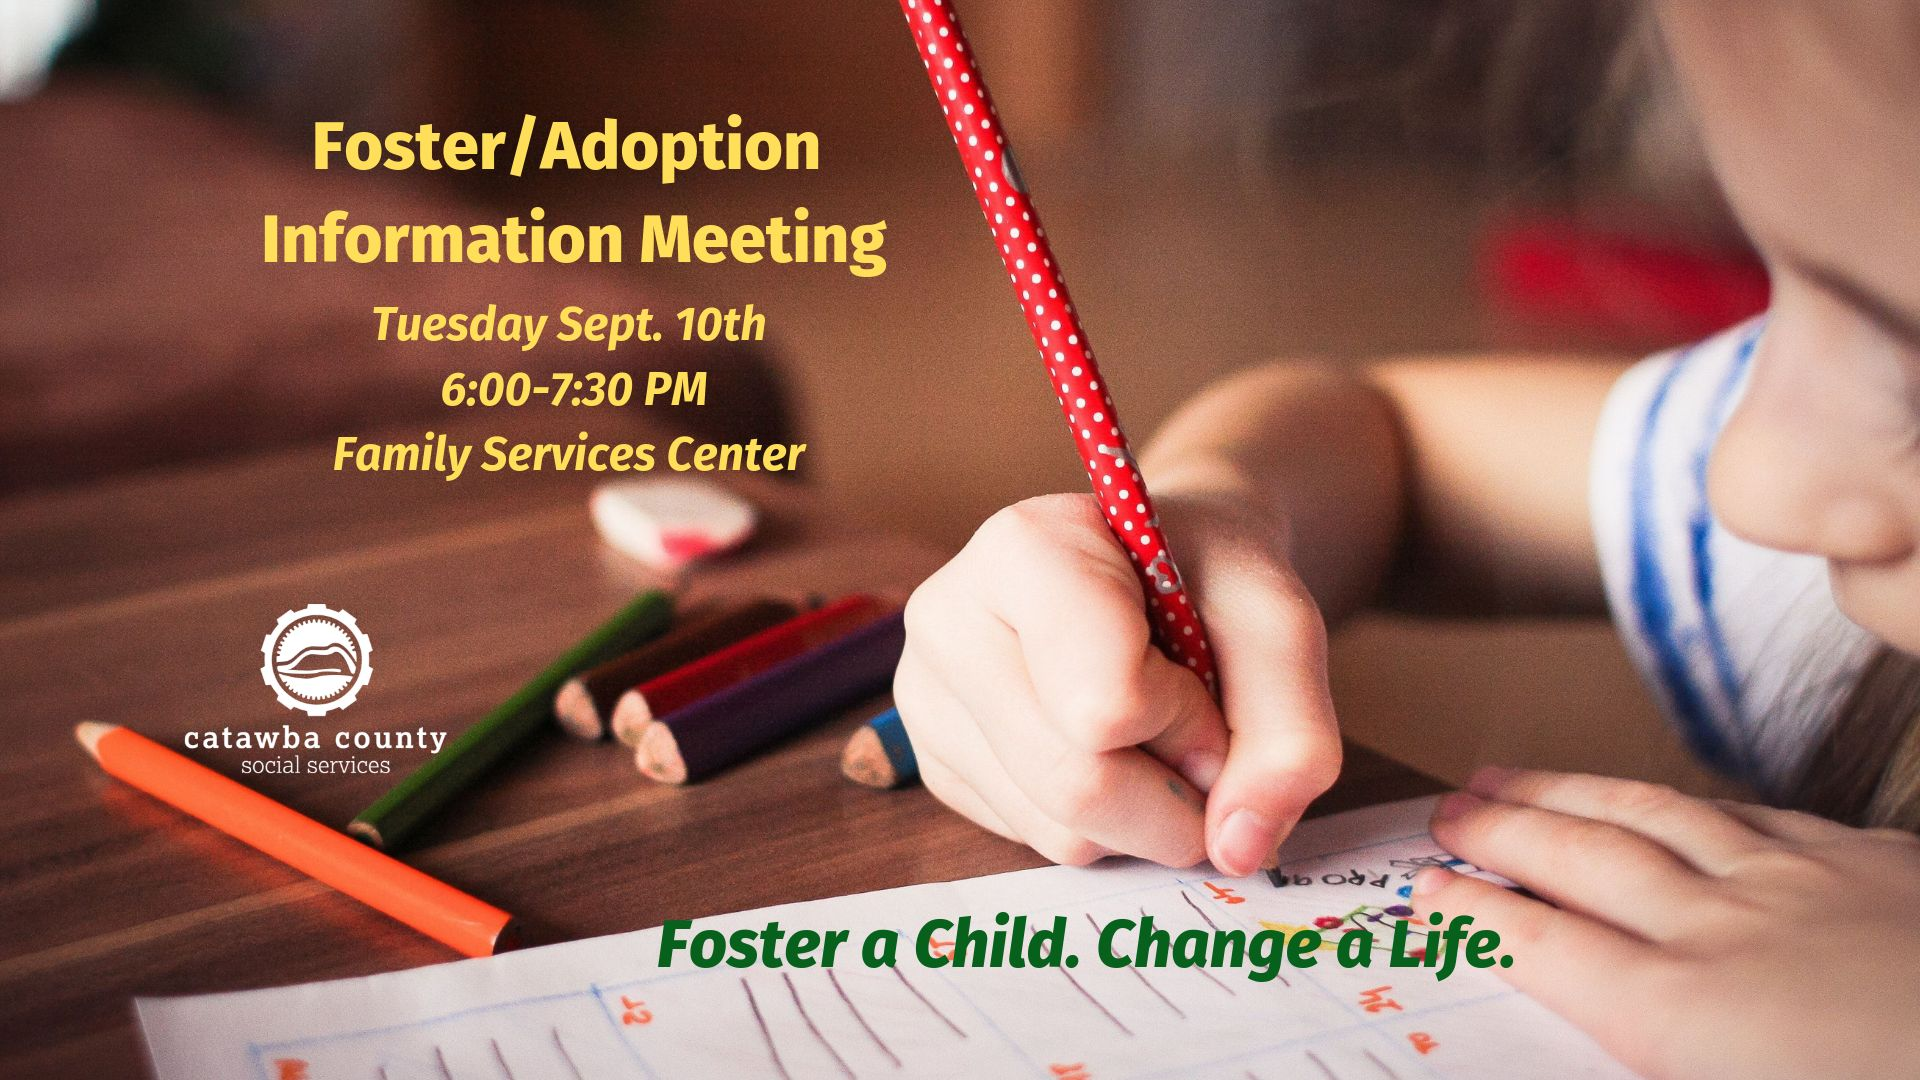 Foster/Adoption Information Meeting 9-10-19